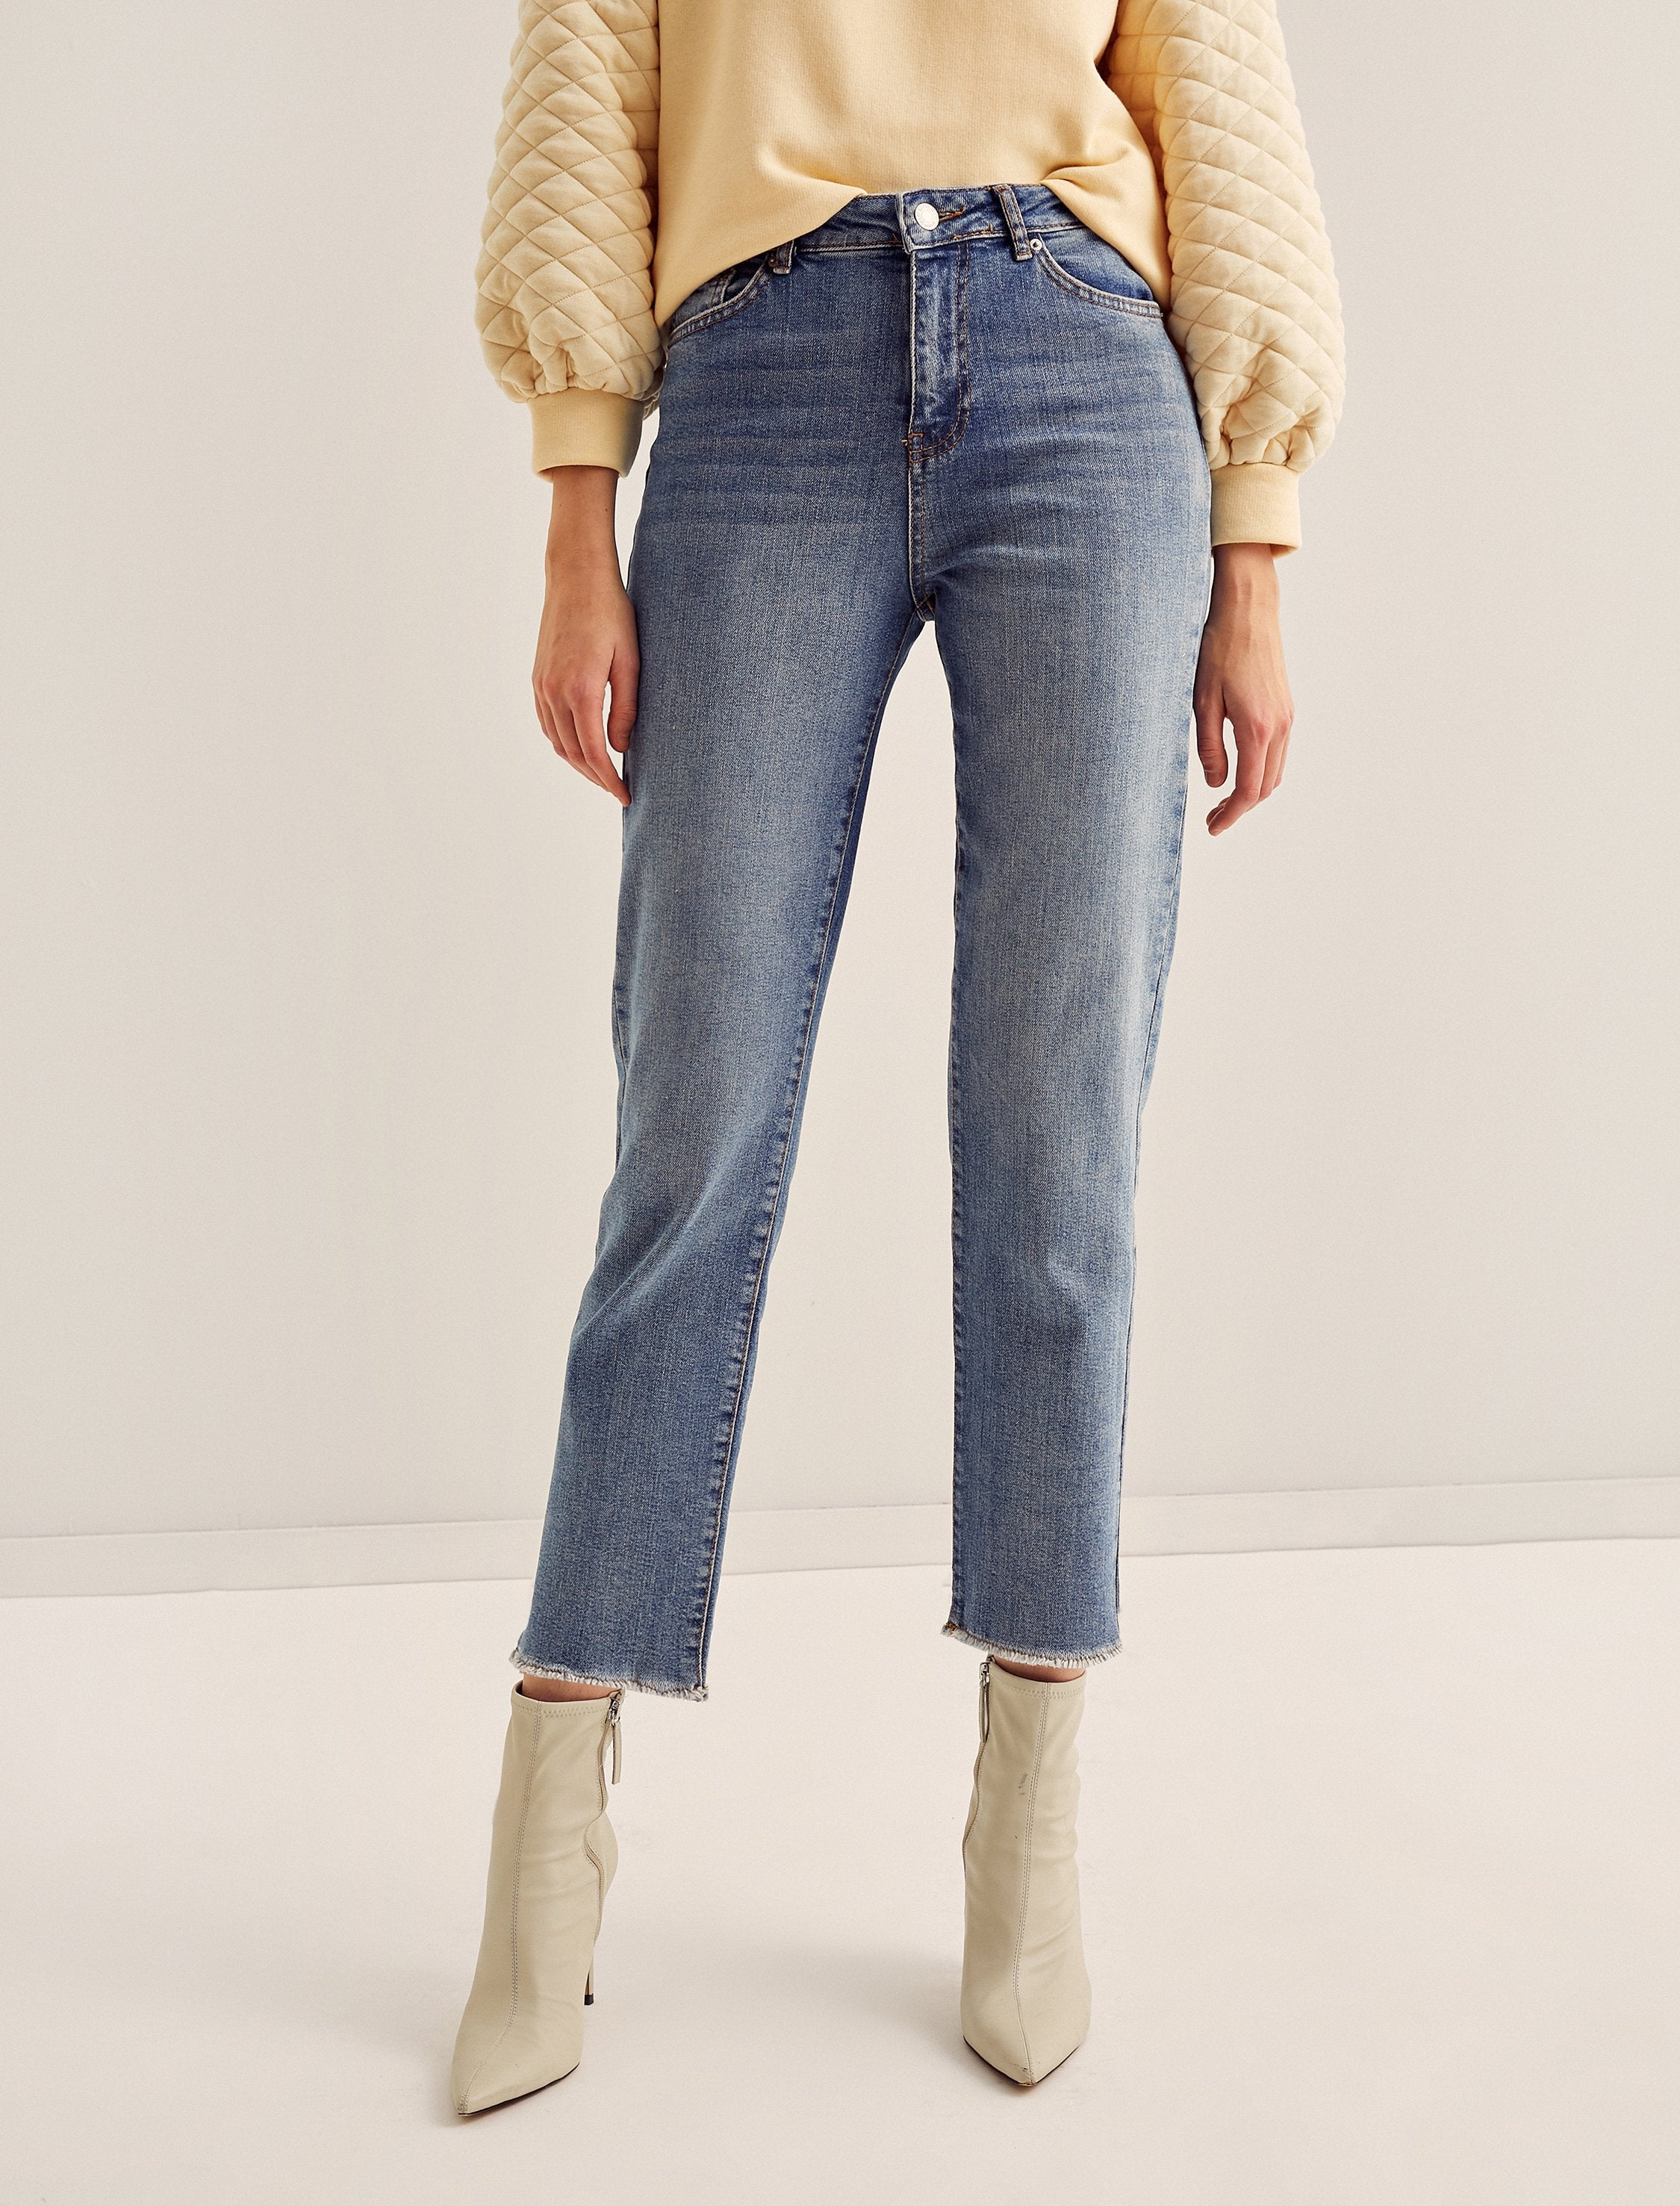 Eve Straight Ankle Jeans in Blue Wash